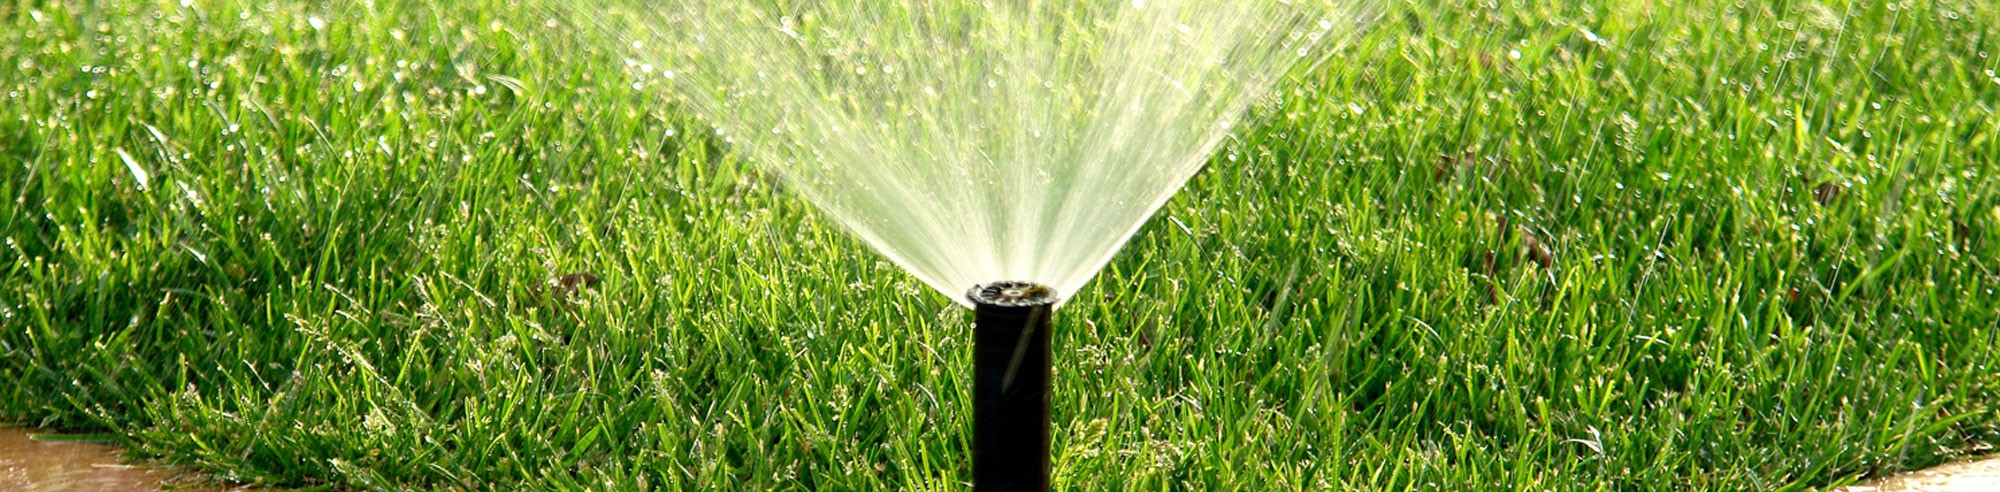 Your Sprinkler Systems Life Expectancy And Ways To Prolong It Controller Wiring Diagram Likewise Rain Bird Valve Blog